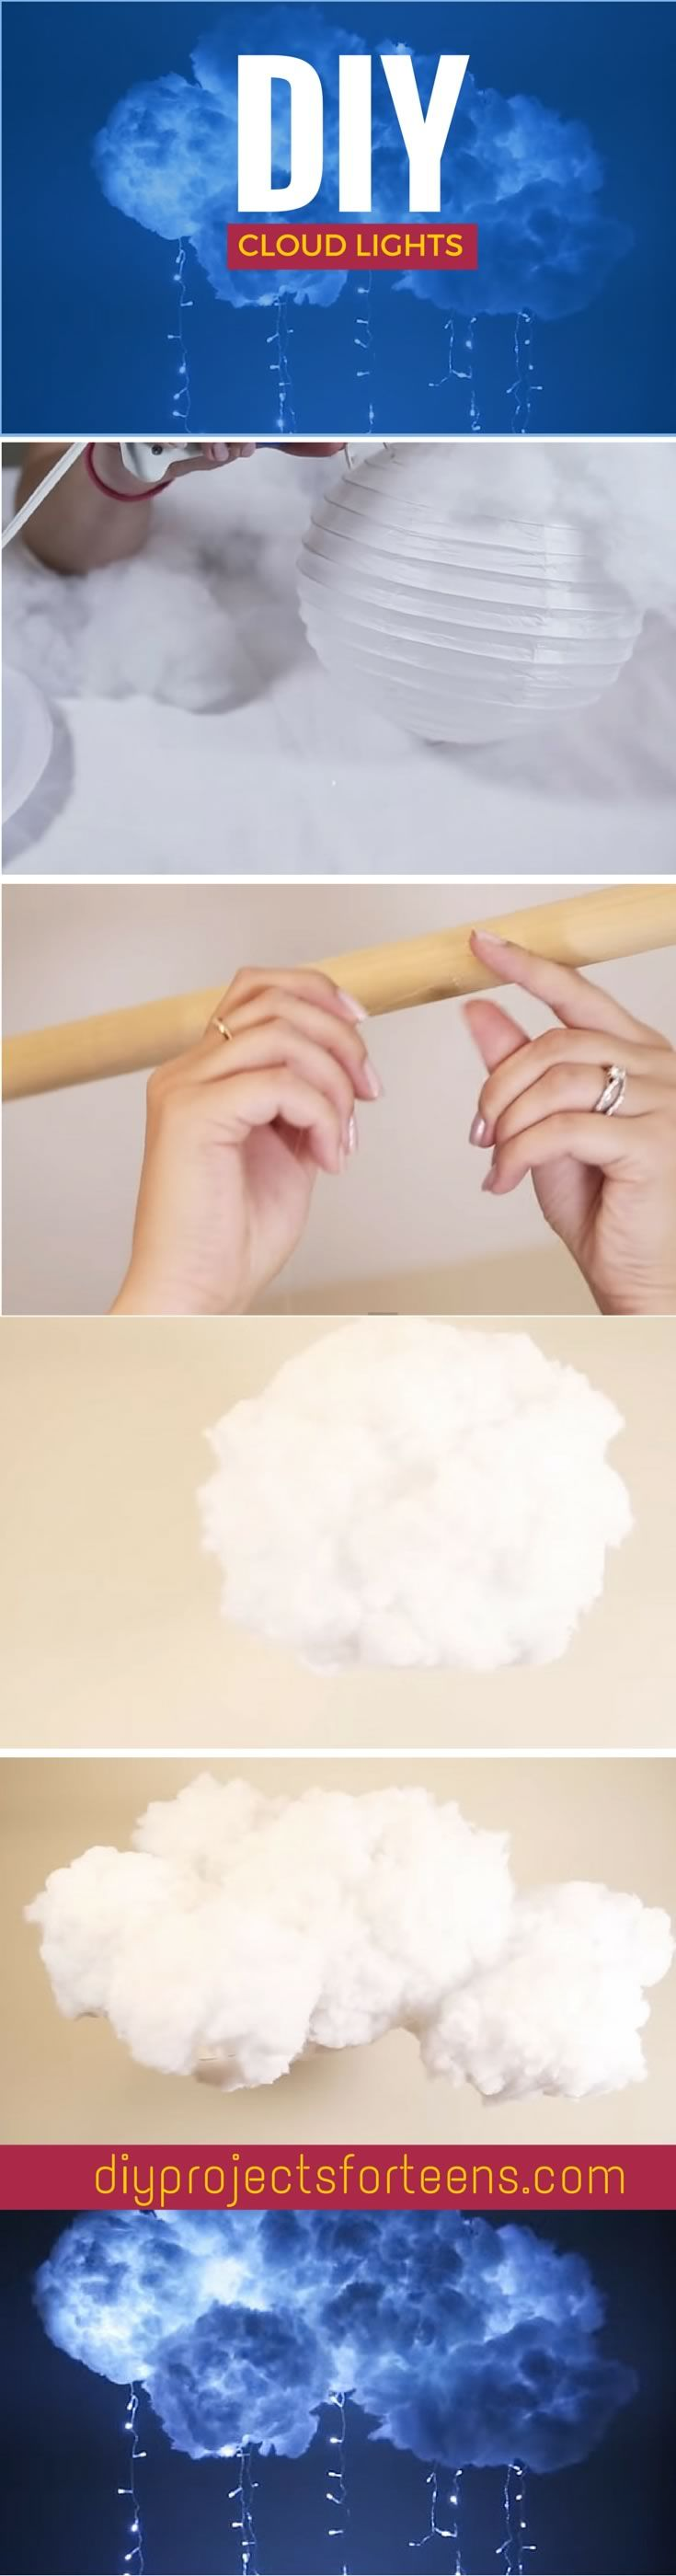 diy projects for teens room ideas easy diy made make clouds with string lights build easy diy lighting